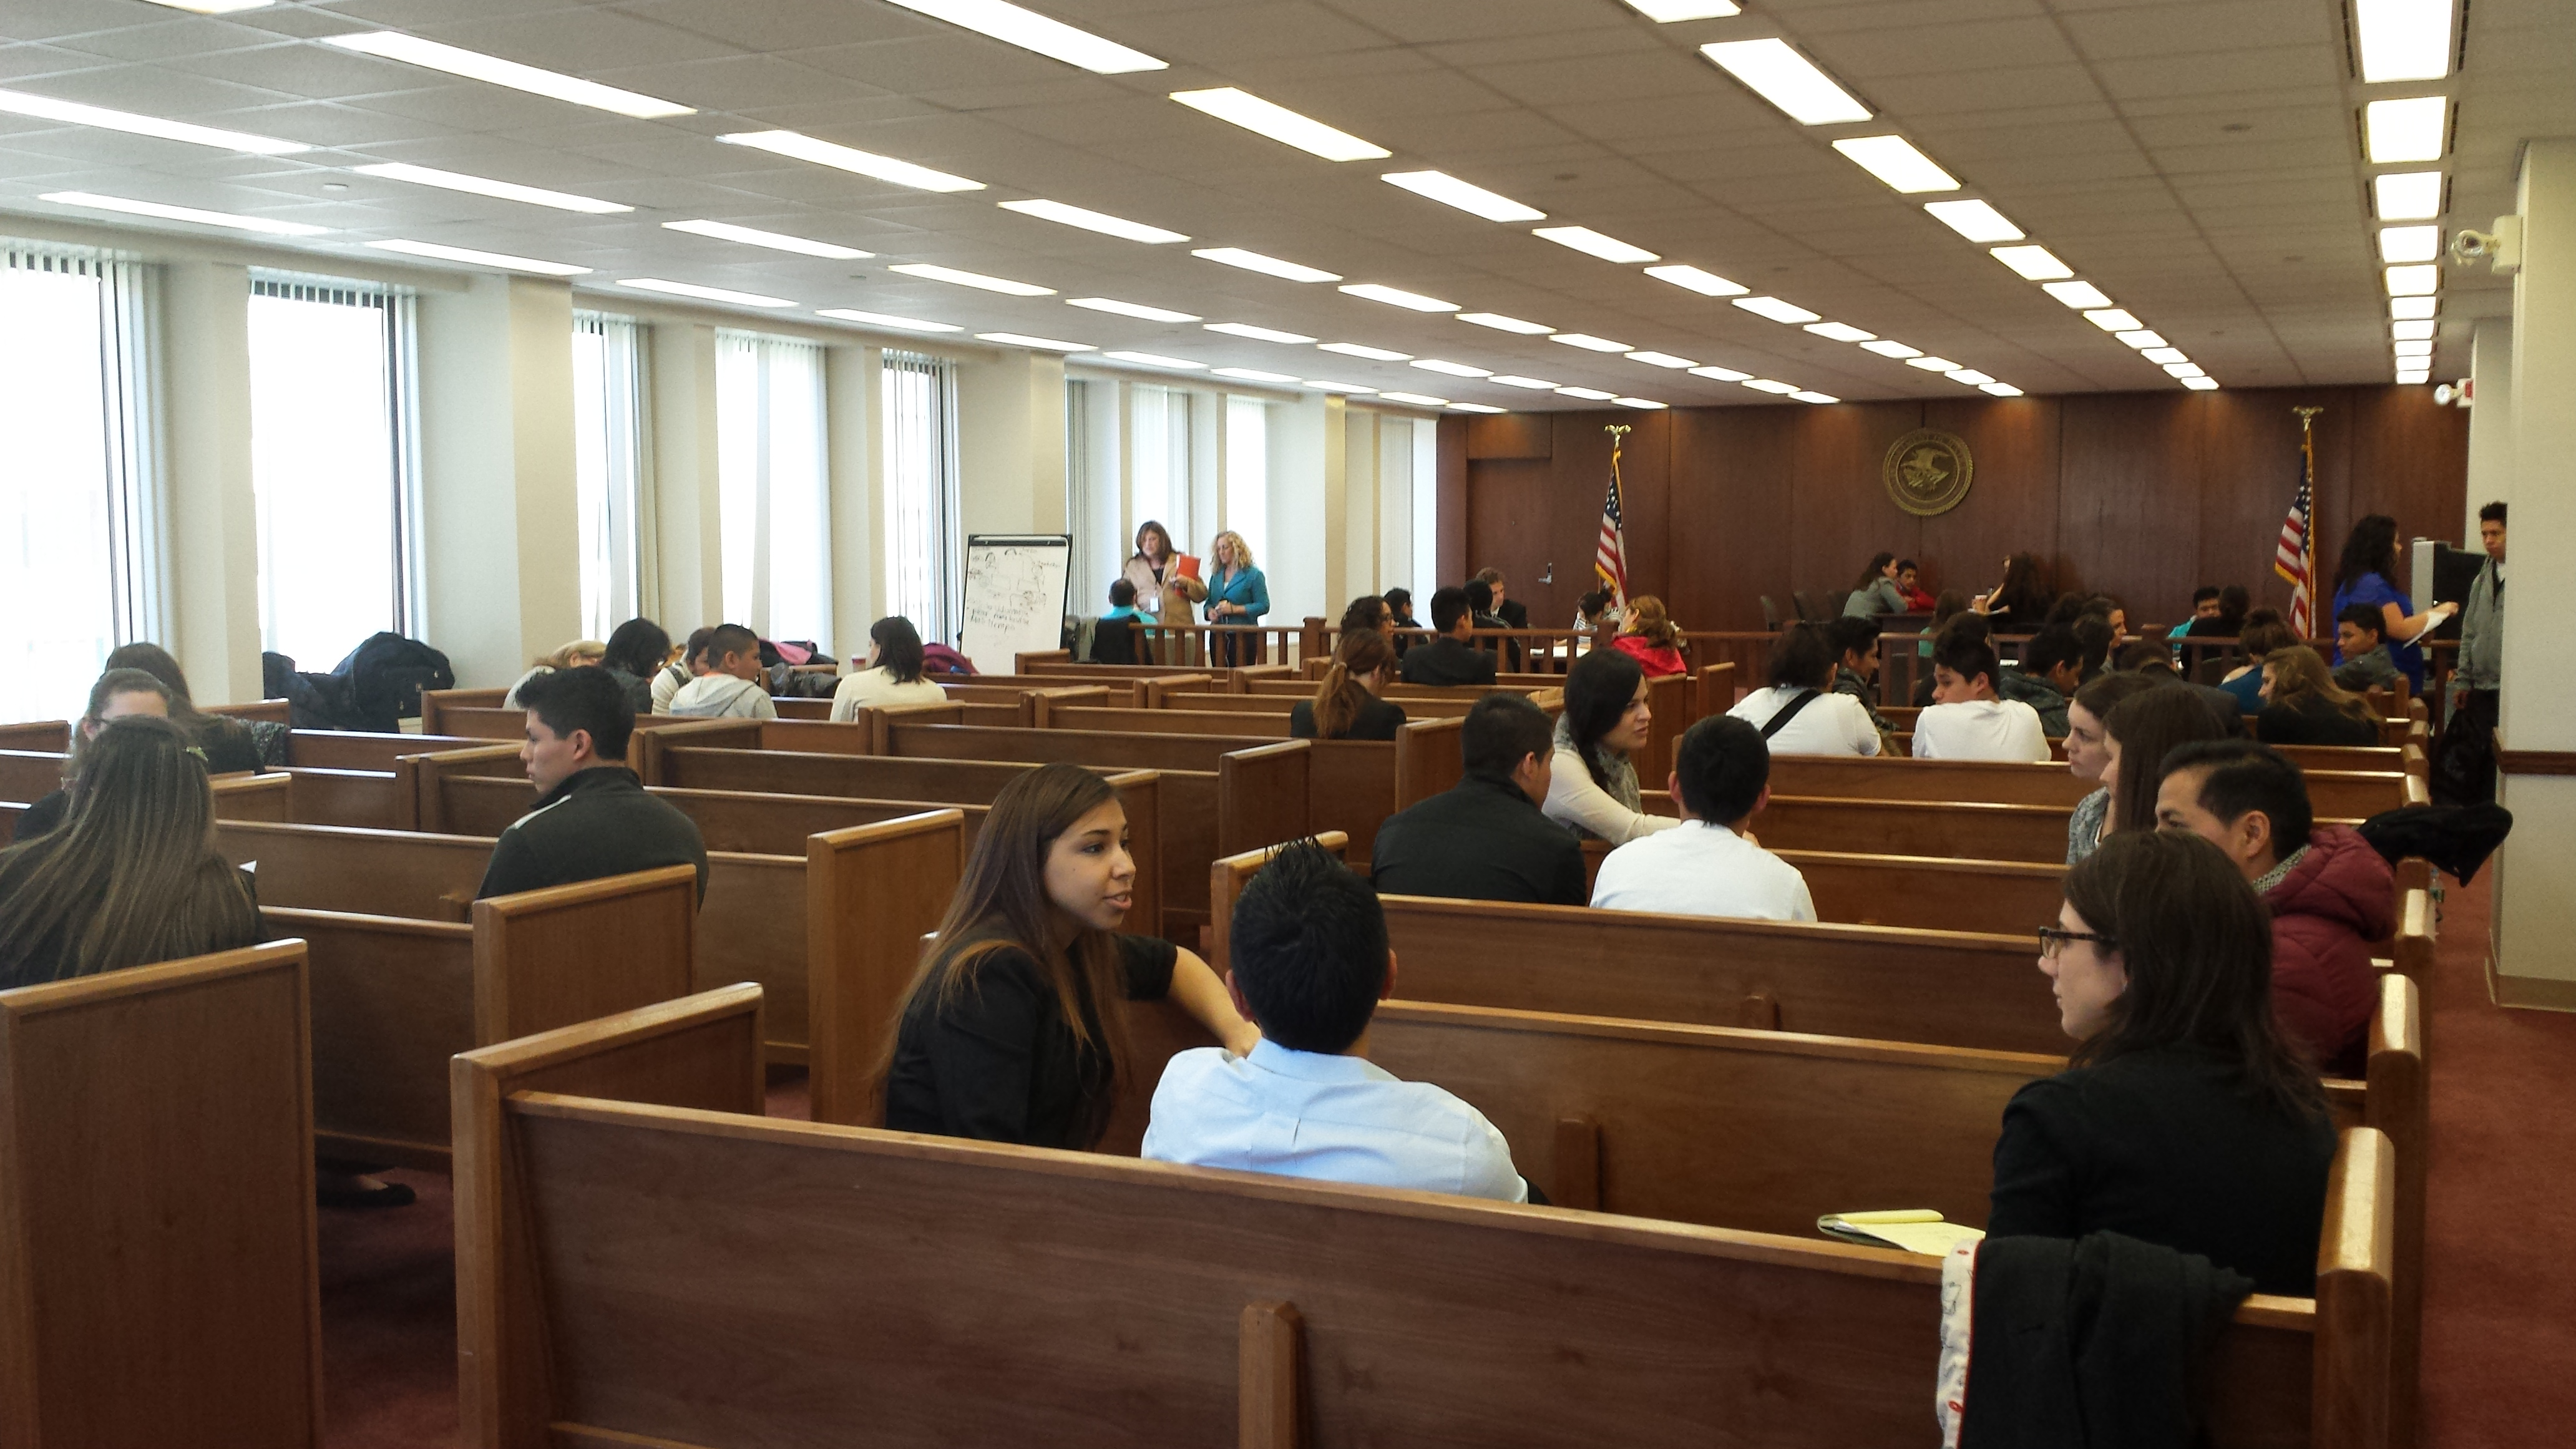 Immigration Court: Where Children Are Their Own Lawyers